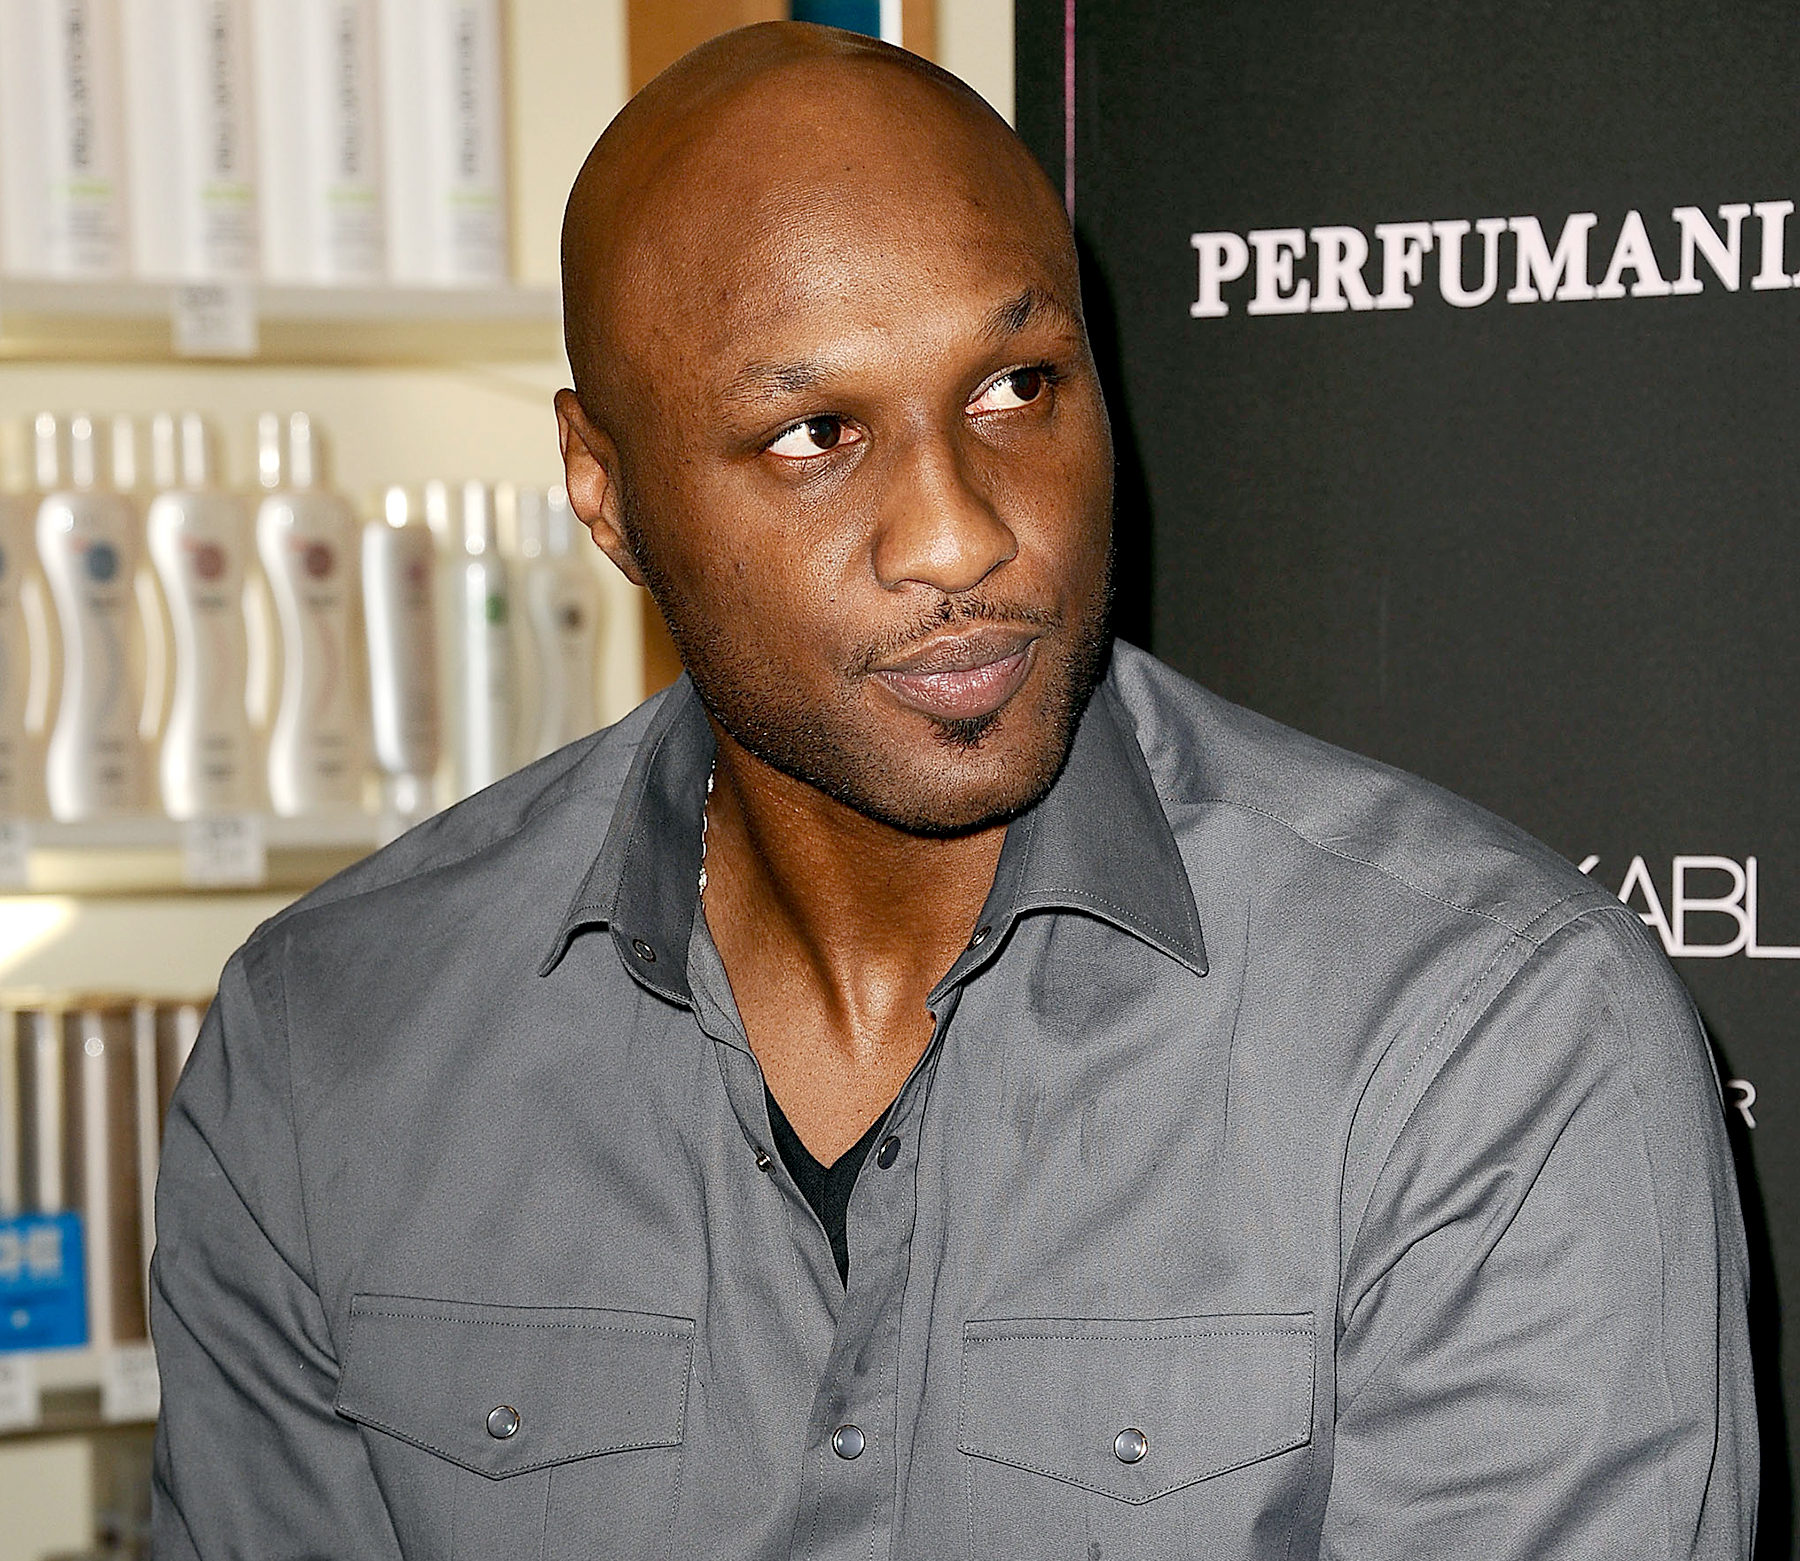 Lamar Odom makes an appearance for 'Unbreakable Bond' at Perfumania in Orange, California, on June 7, 2012.